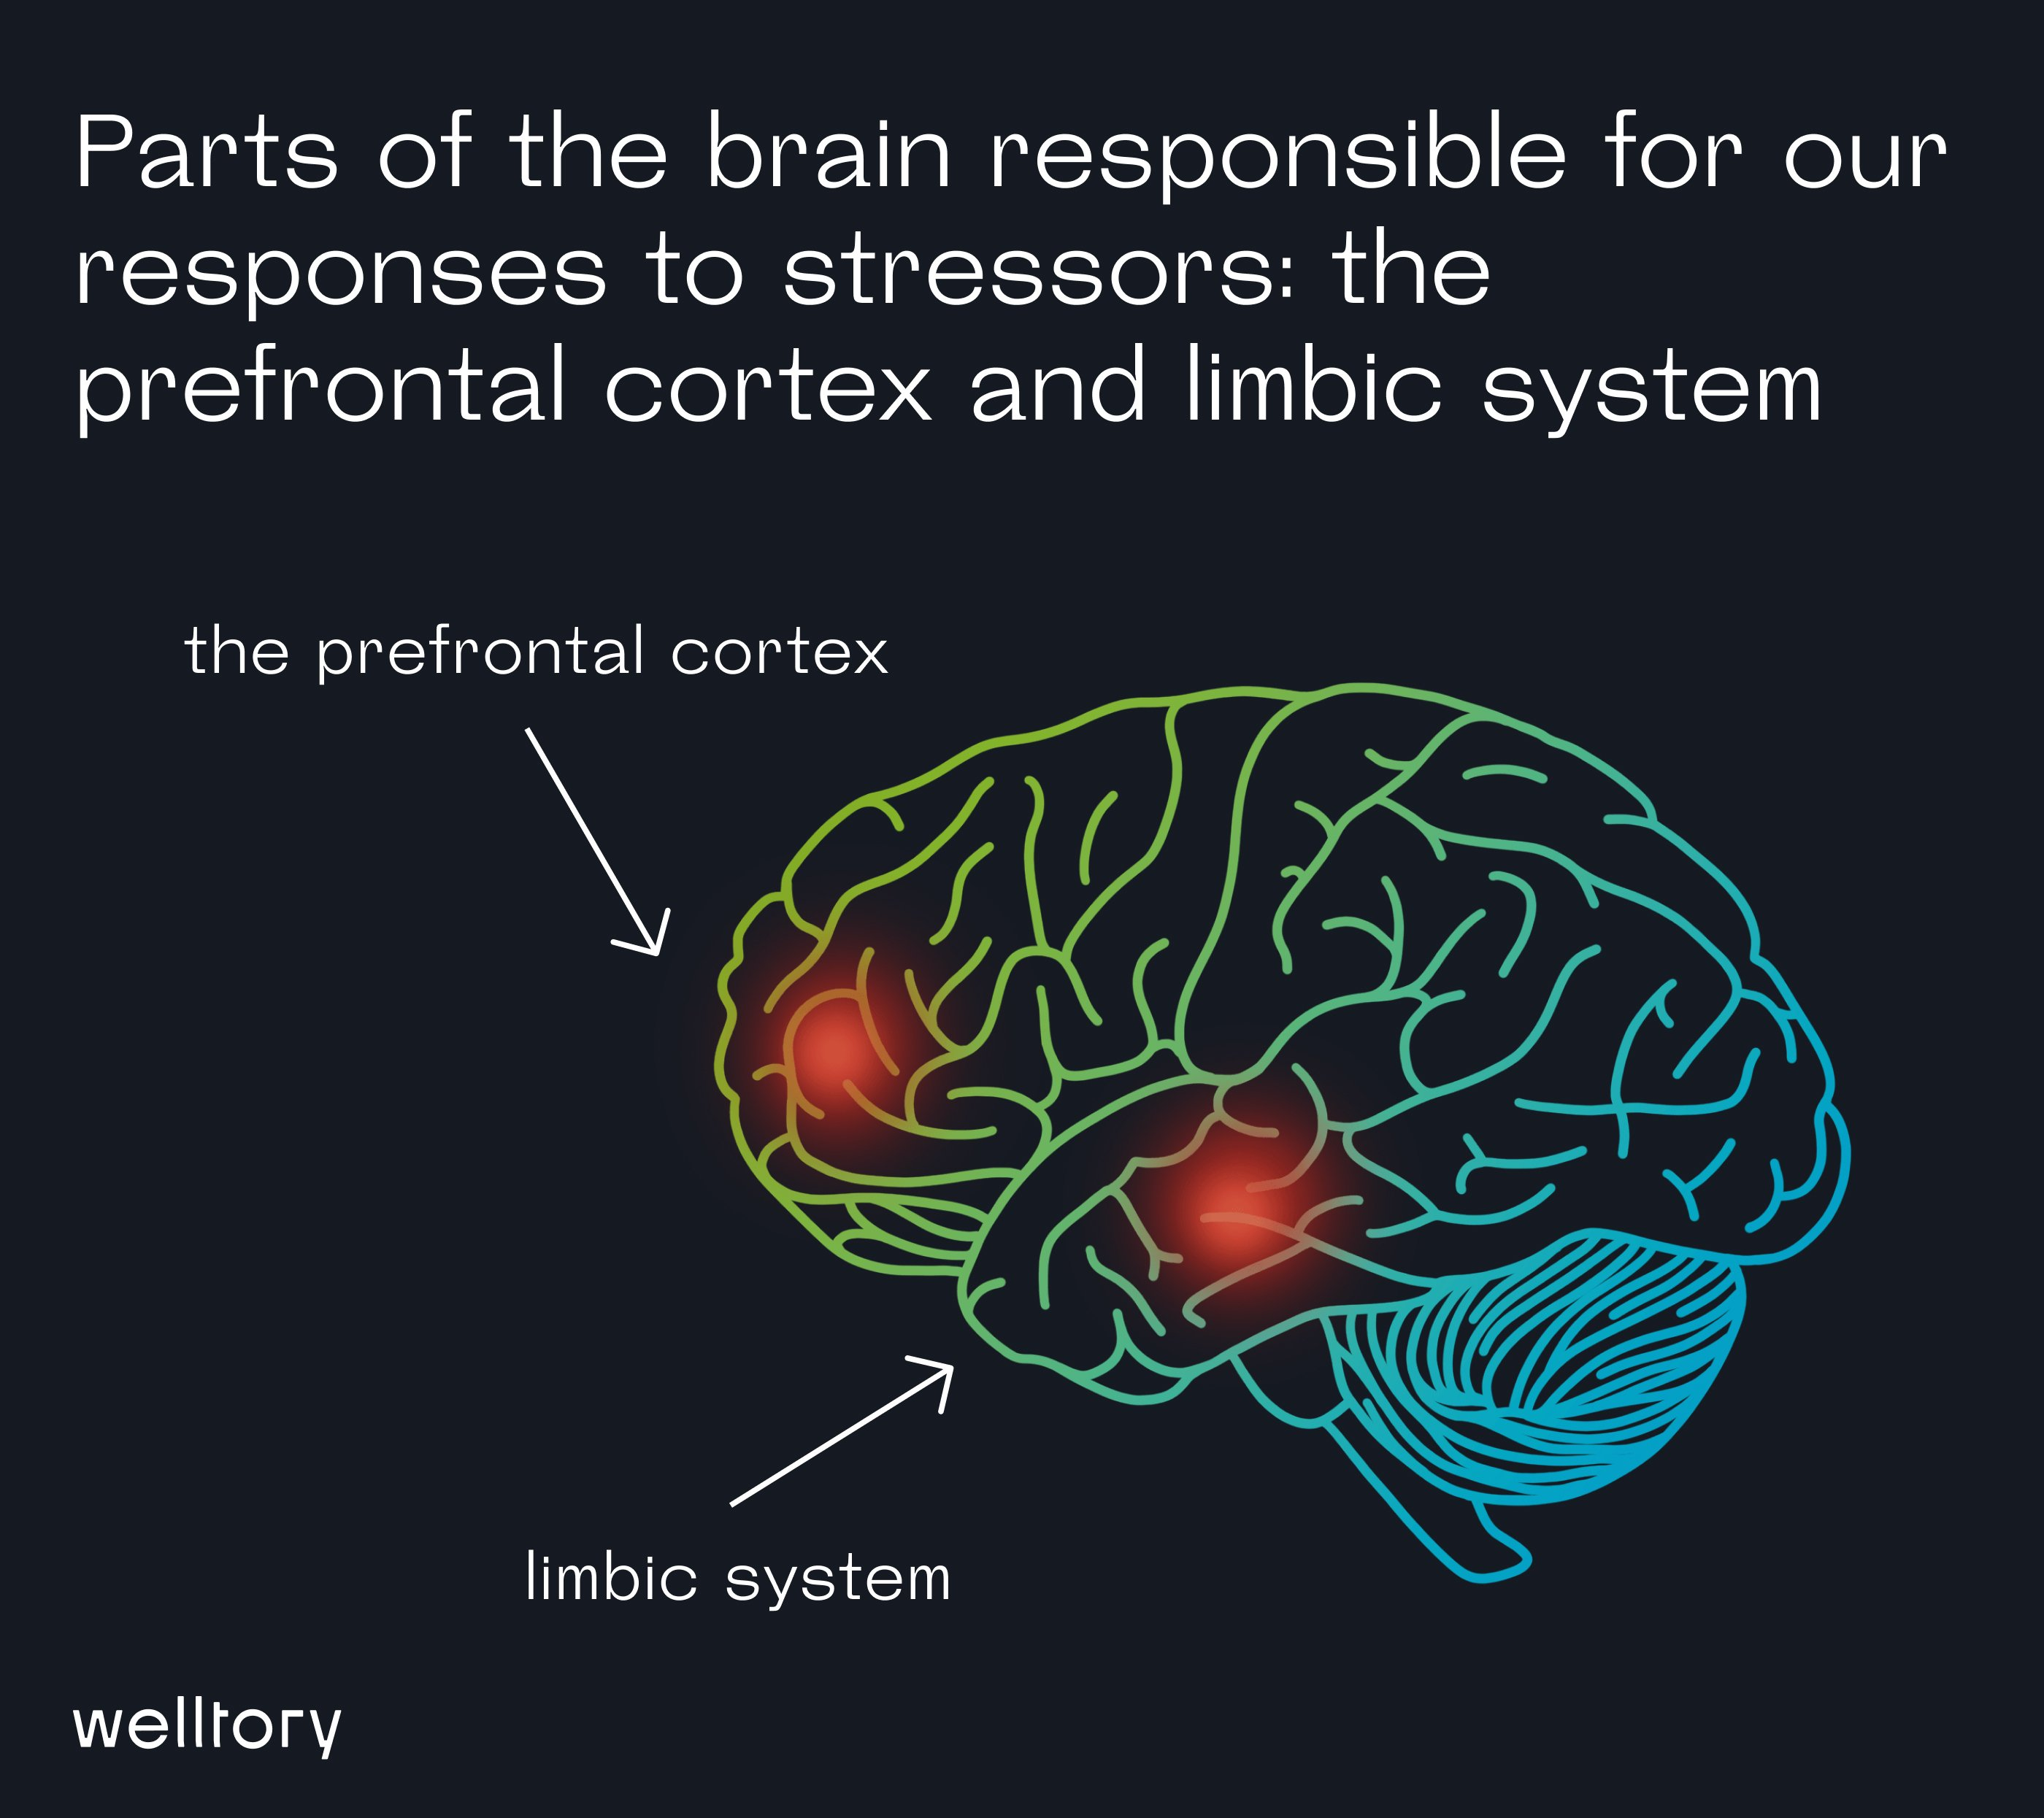 Parts of the brain responsible for our responses to stressors: the prefrontal cortex and limbic system